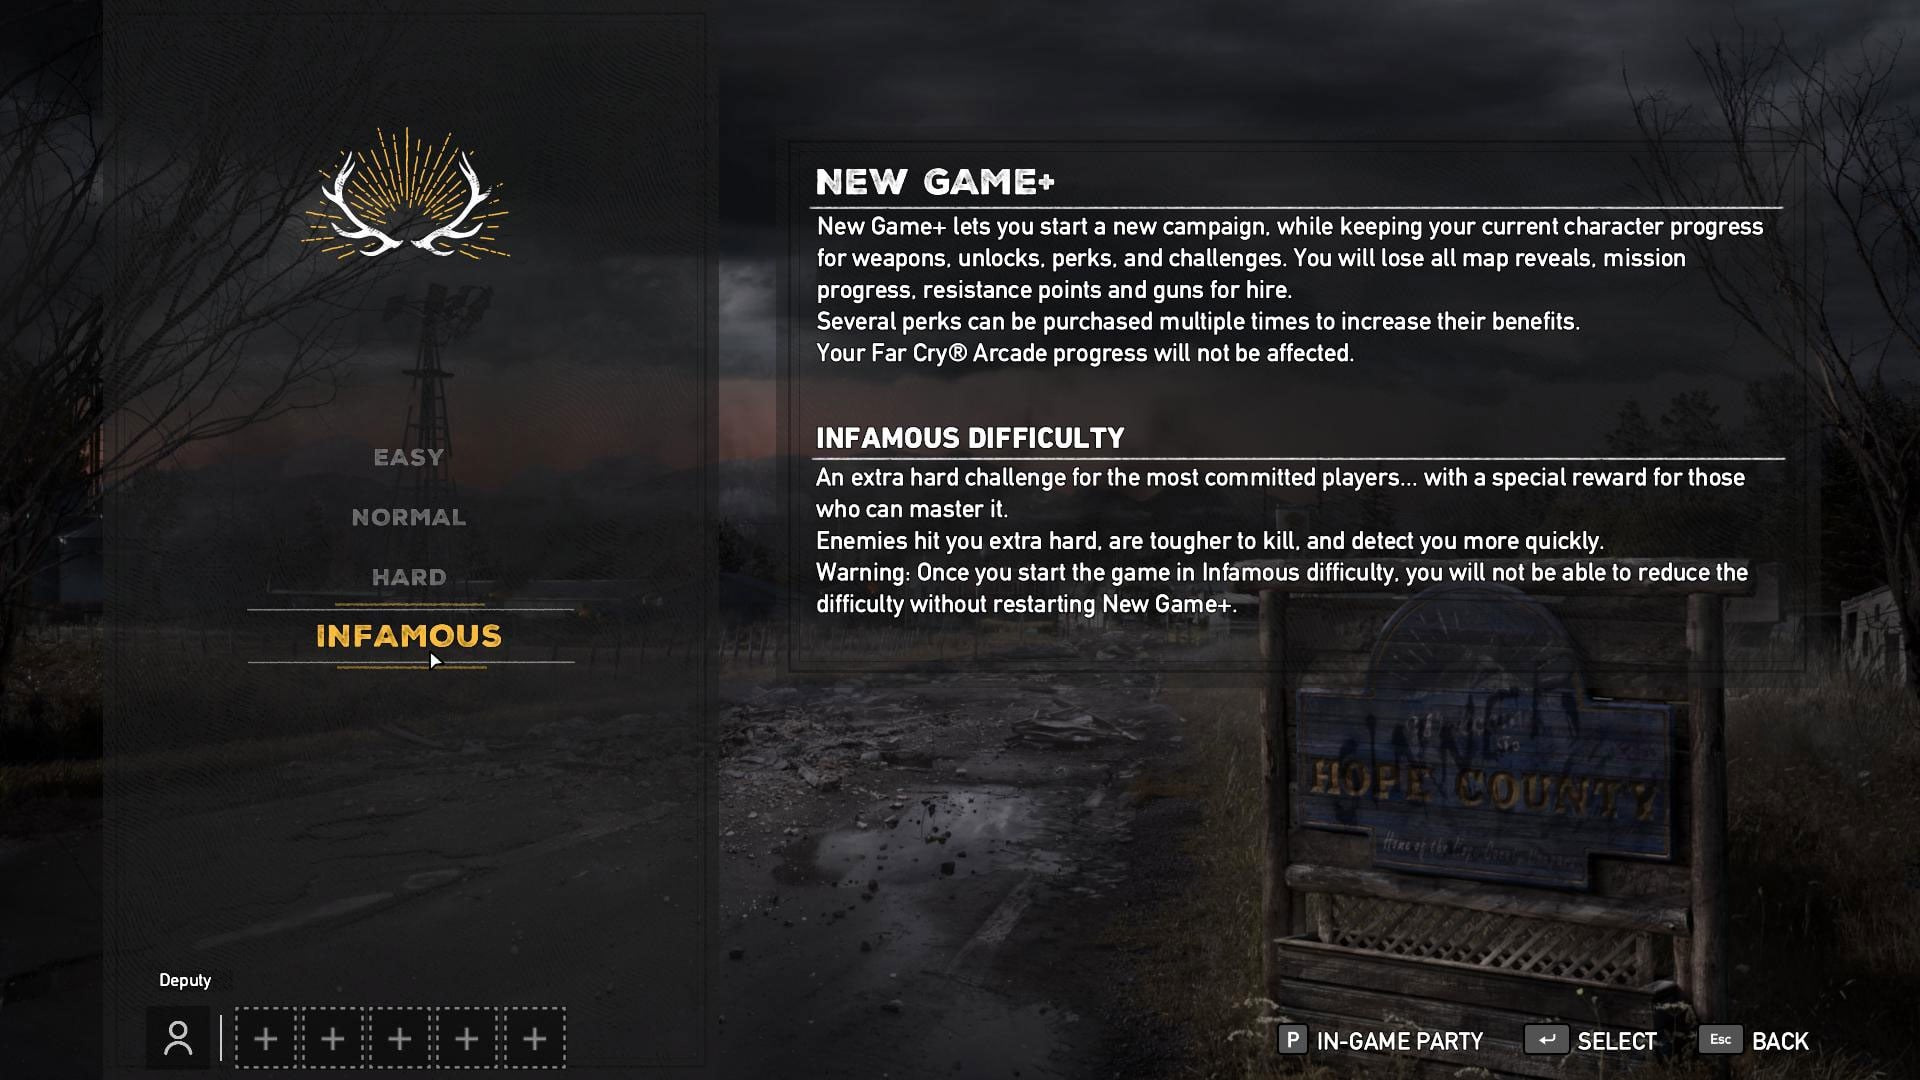 Far Cry 5 Gets Dead Living Zombies And New Game Achievements Microsoft Xbox 360 Elite Dissected Layout Changes Revealed